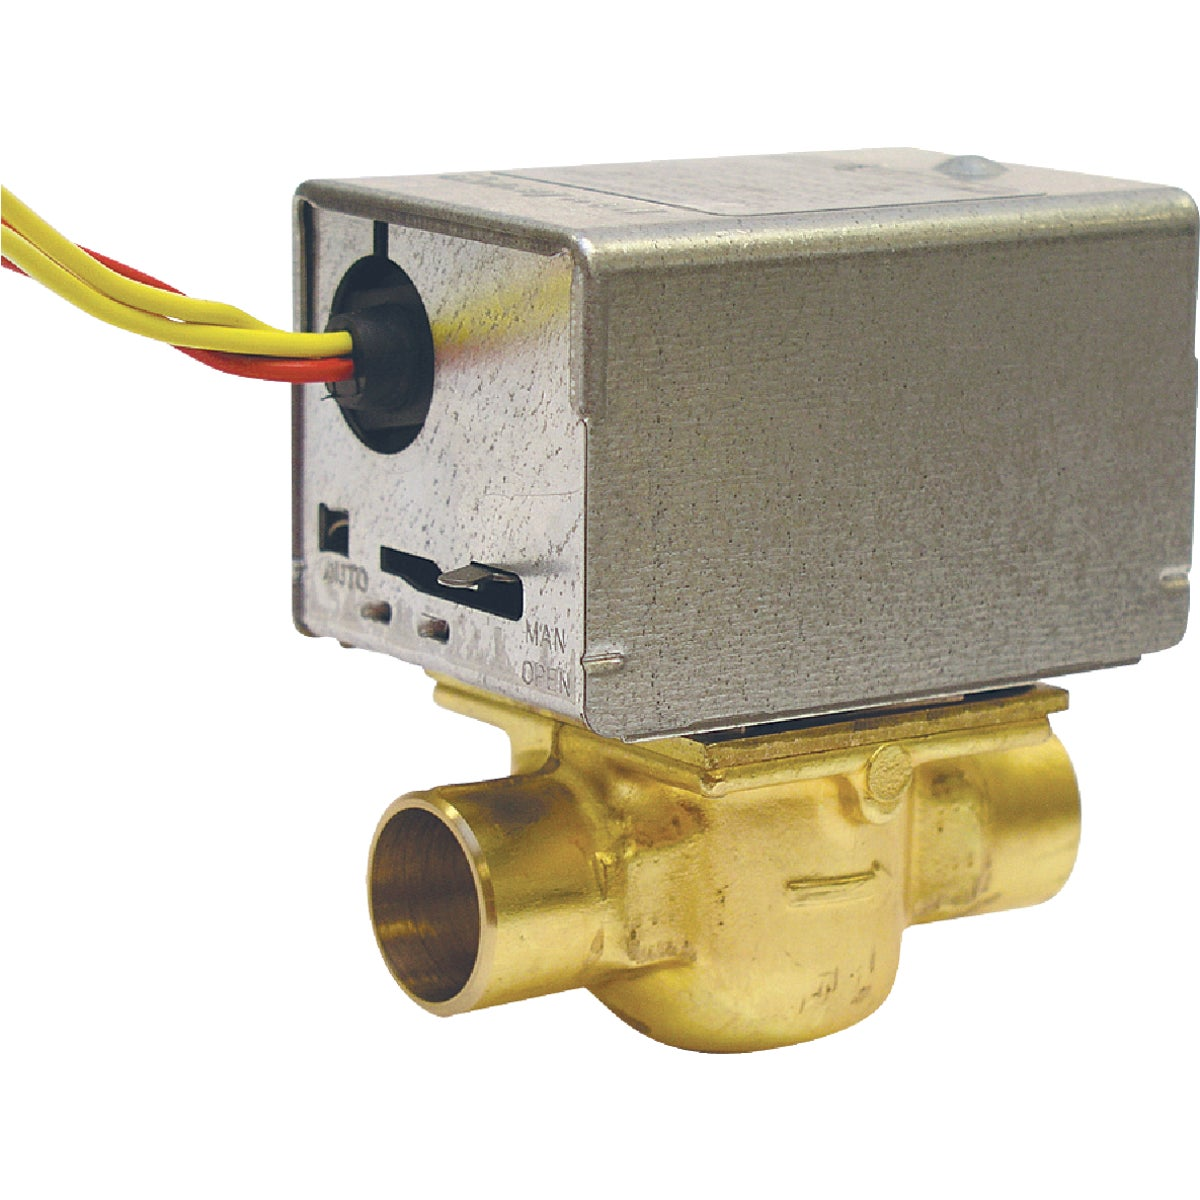 "3/4"" 24V ZONE VALVE - V8043E1012 by Honeywell Internatl"